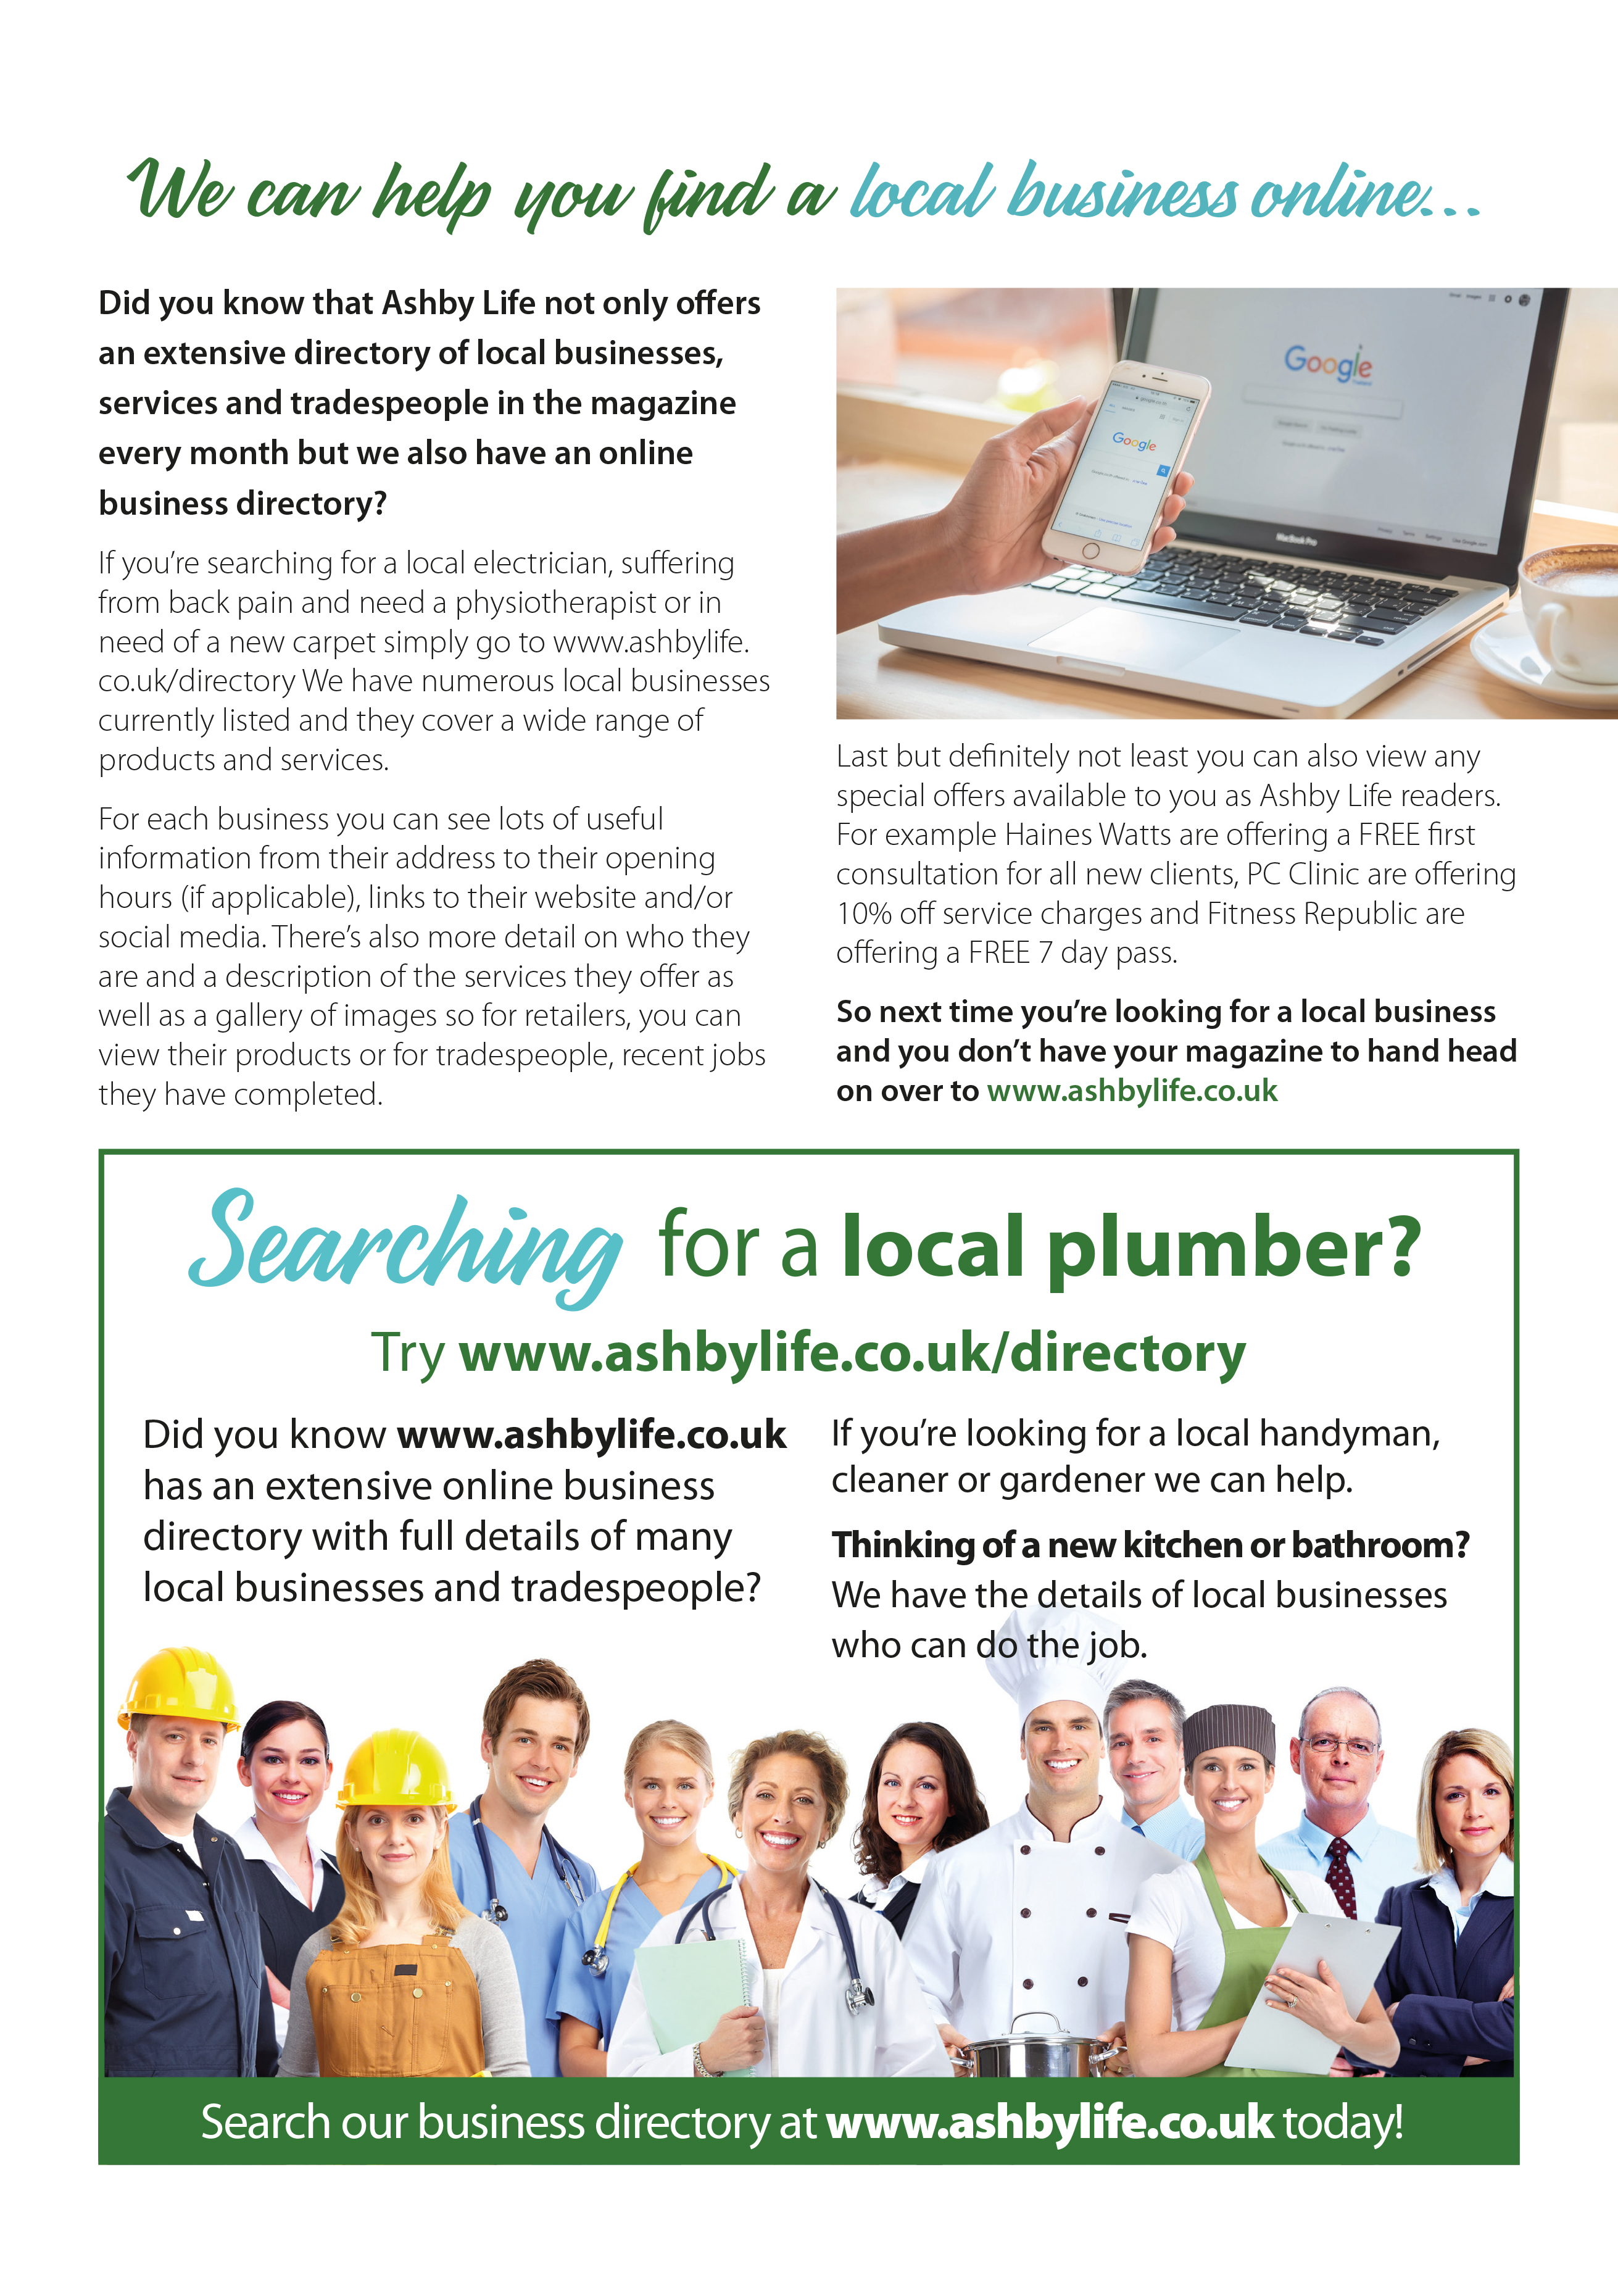 Our online business directory can help you find a local